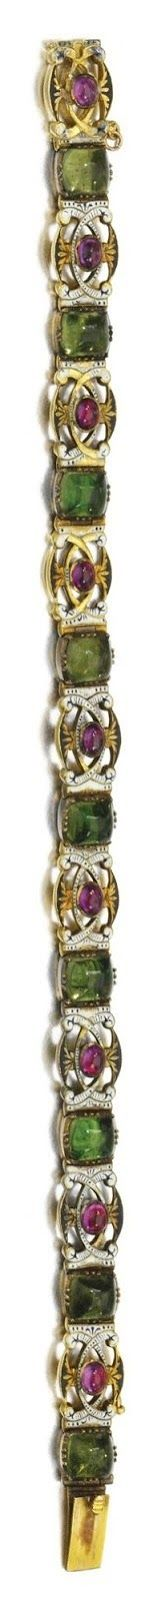 Enamel and ruby bracelet by Carlo Giuliano, made between 1874 and 1895. Of pierced scrollwork design, alternating between green paste stones and elaborately designed links of monochromatic enamel and cabochon rubies. Via Diamonds in the Library.